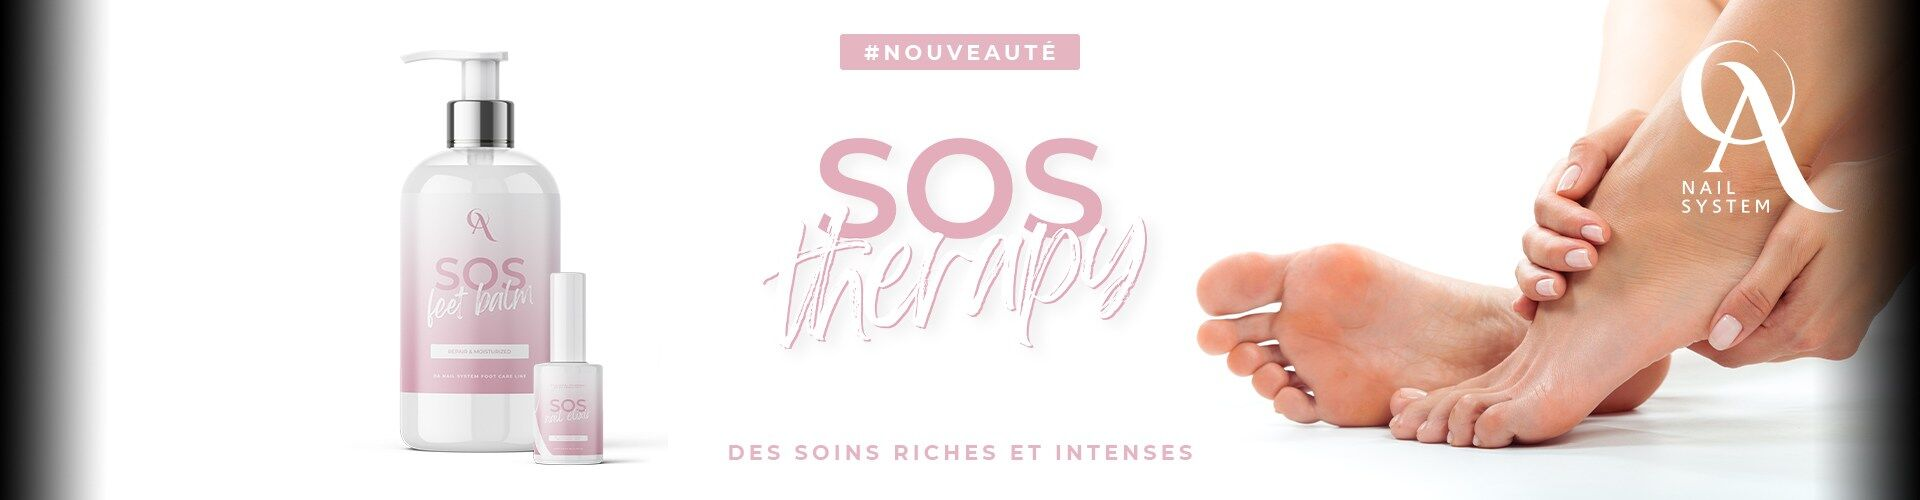 SLIDE 1 - SOS THERAPY